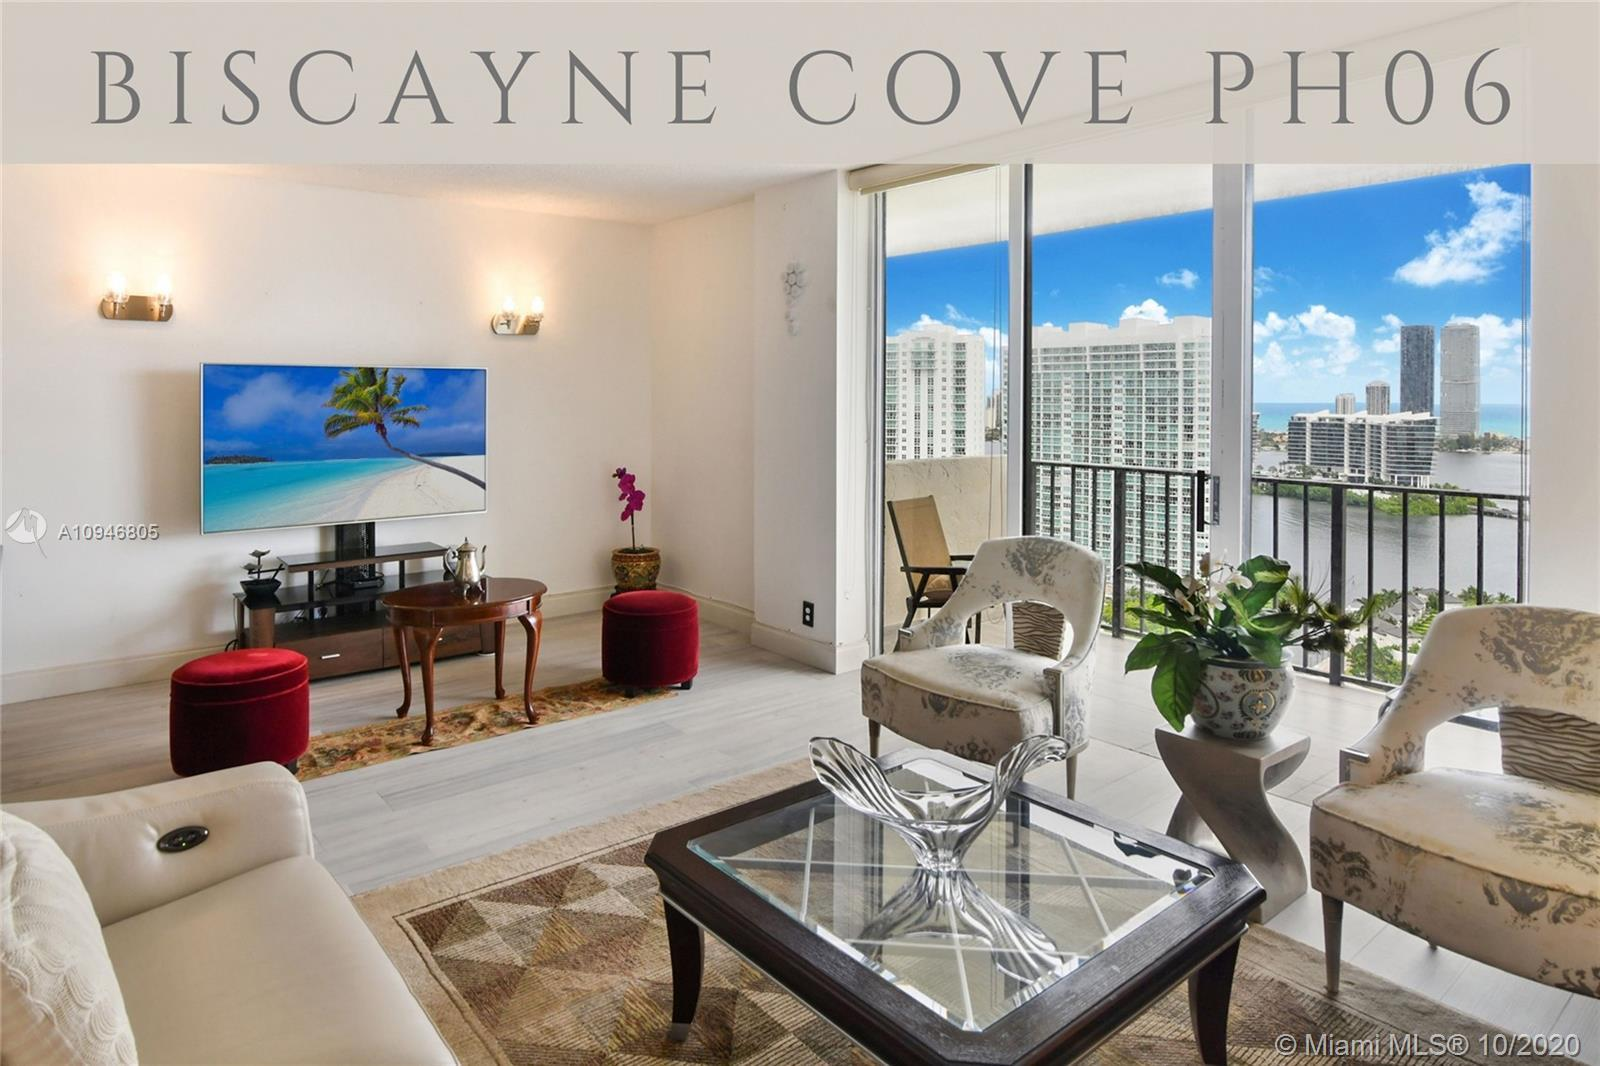 RARE 2 Bedroom Penthouse at Biscayne Cove! Spectacular top-floor water views, from one of the larges